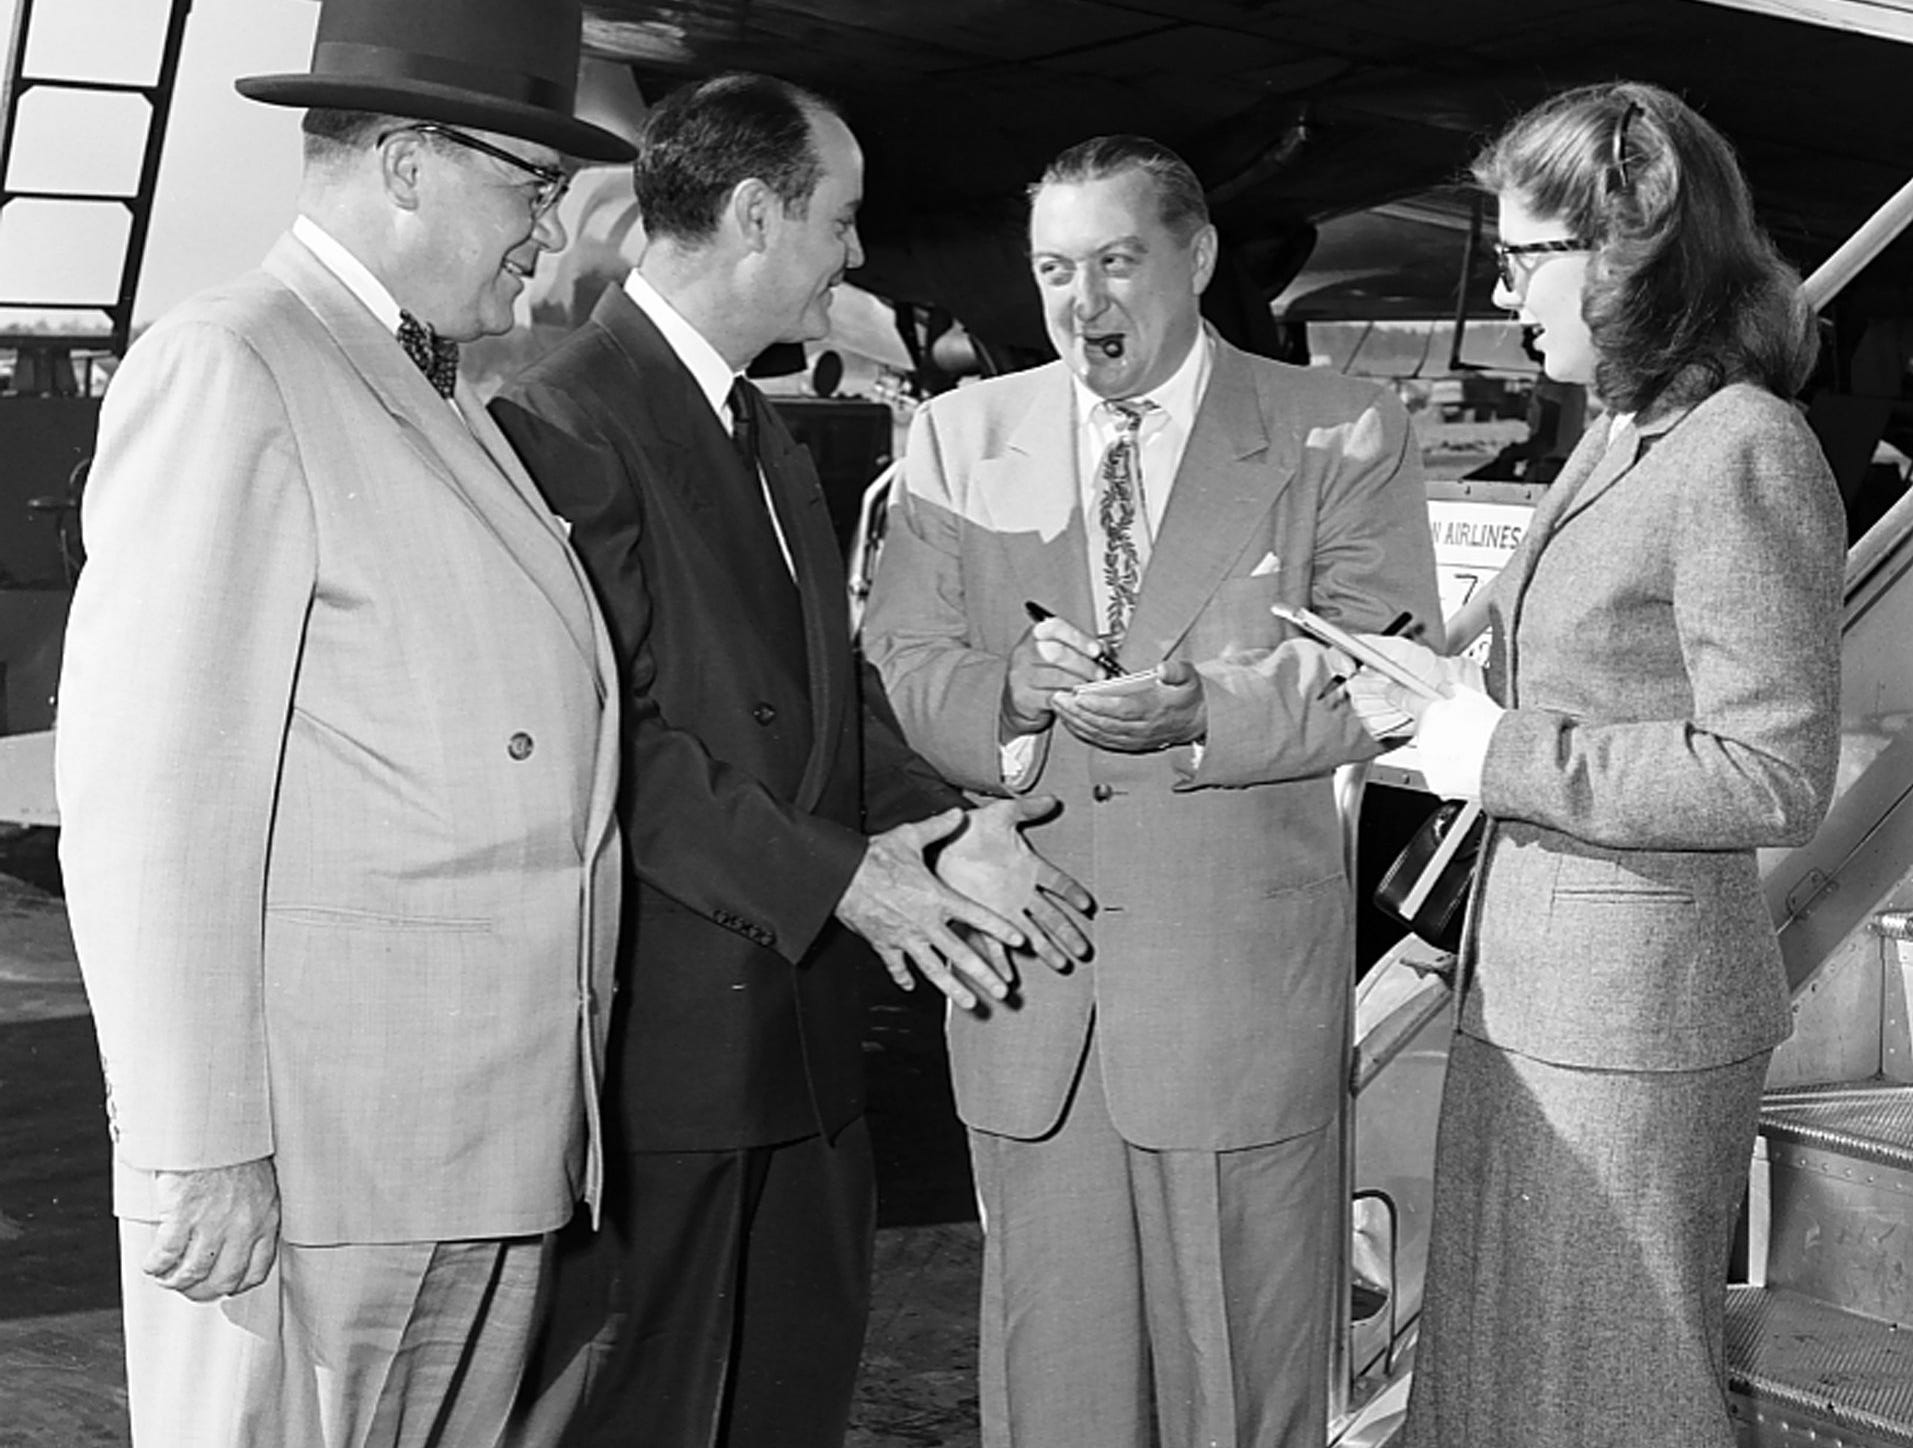 Before joining them for an inspection tour of cotton plantations near Greenville, MS in October 1951, Ed Lipscomb (Second Left), director of publications for the National Cotton Council, outlined to his companions what they would see.  Herbert Caterson (Second Right) of the Daily News Record, a cotton journal, and Miss Eleanor Nadler (Right) of Time magazine took notes while John W. Murray (Left) of the American Cotton Manufacturing Institute looked on.